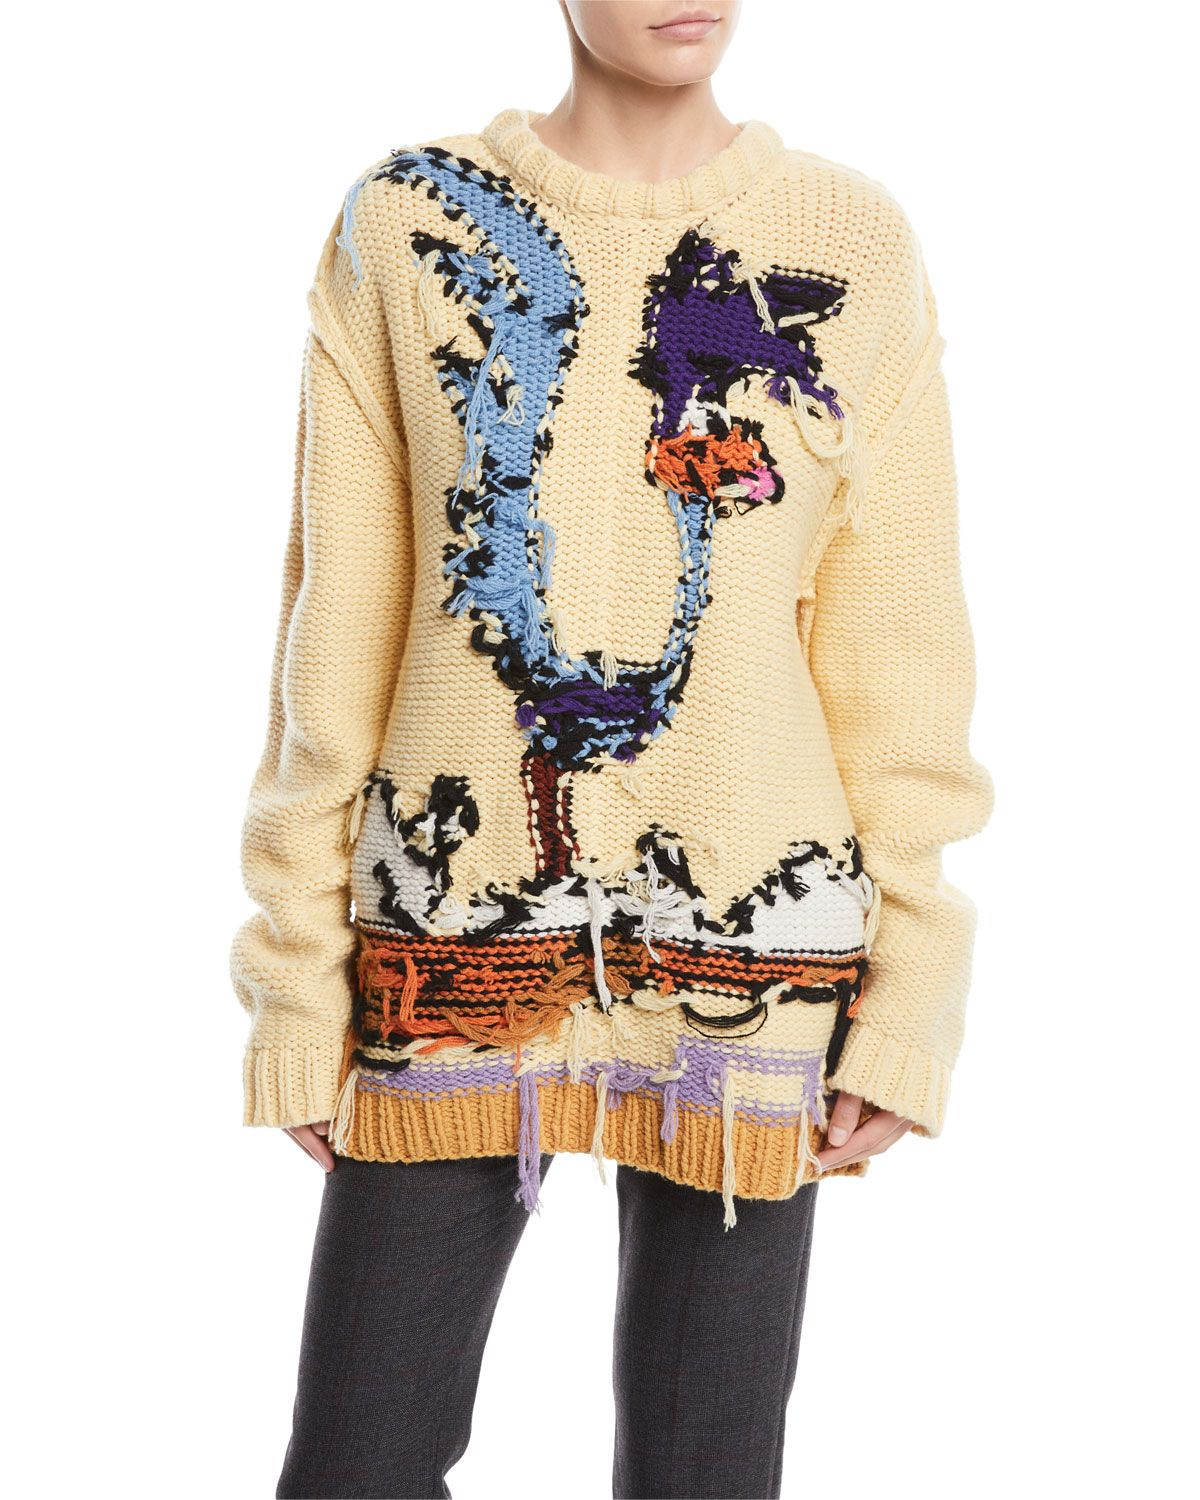 shop-CALVIN-KLEIN-205W39NYC-Looney-Tunes-Road-Runner-Crewneck-Inverted-Stitch-Wool-Sweater